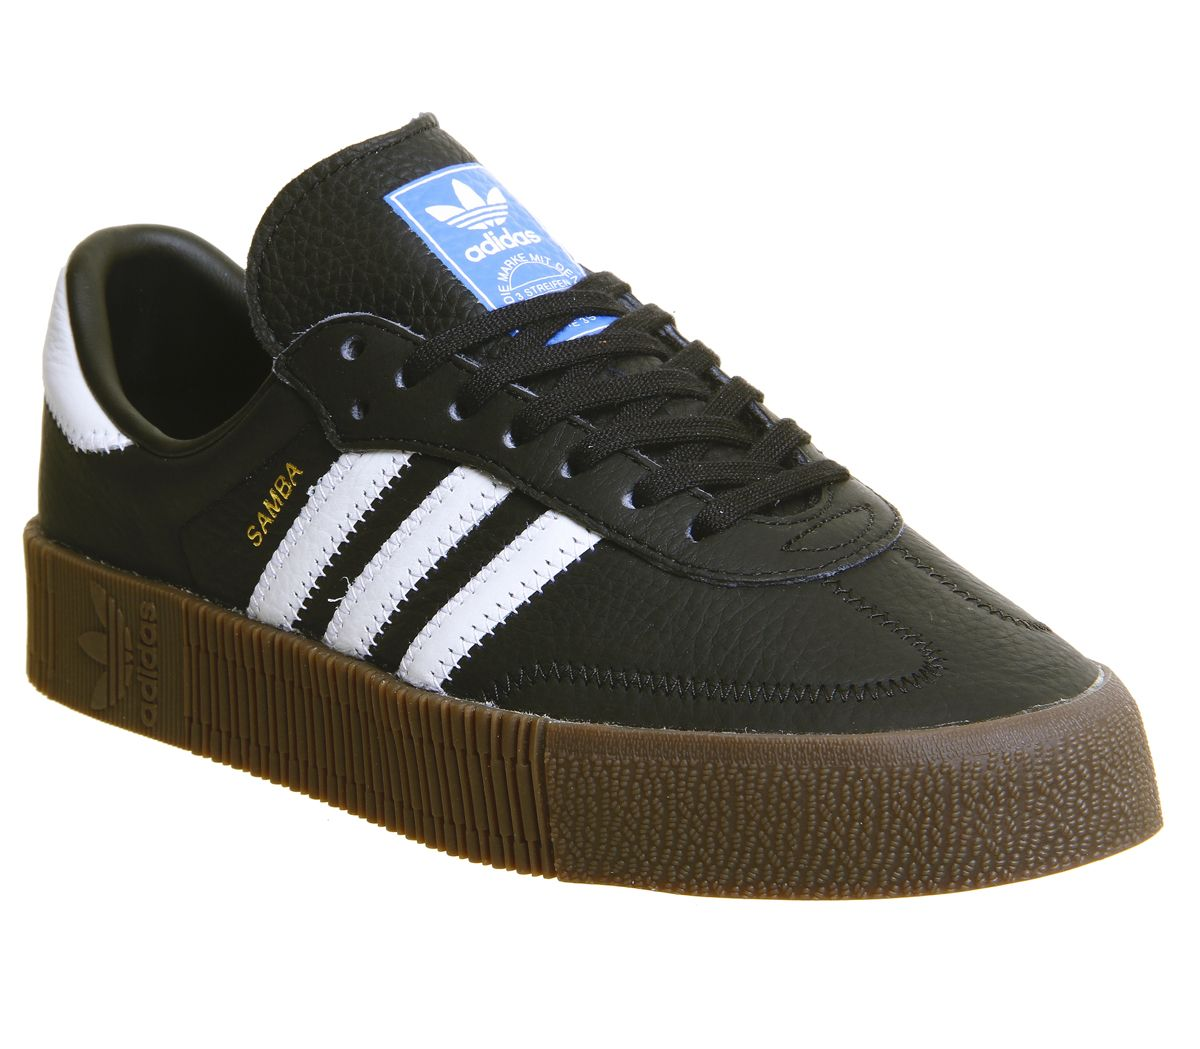 a044efd7f743 adidas Samba Rose Trainers Core Black White Gum - Hers trainers